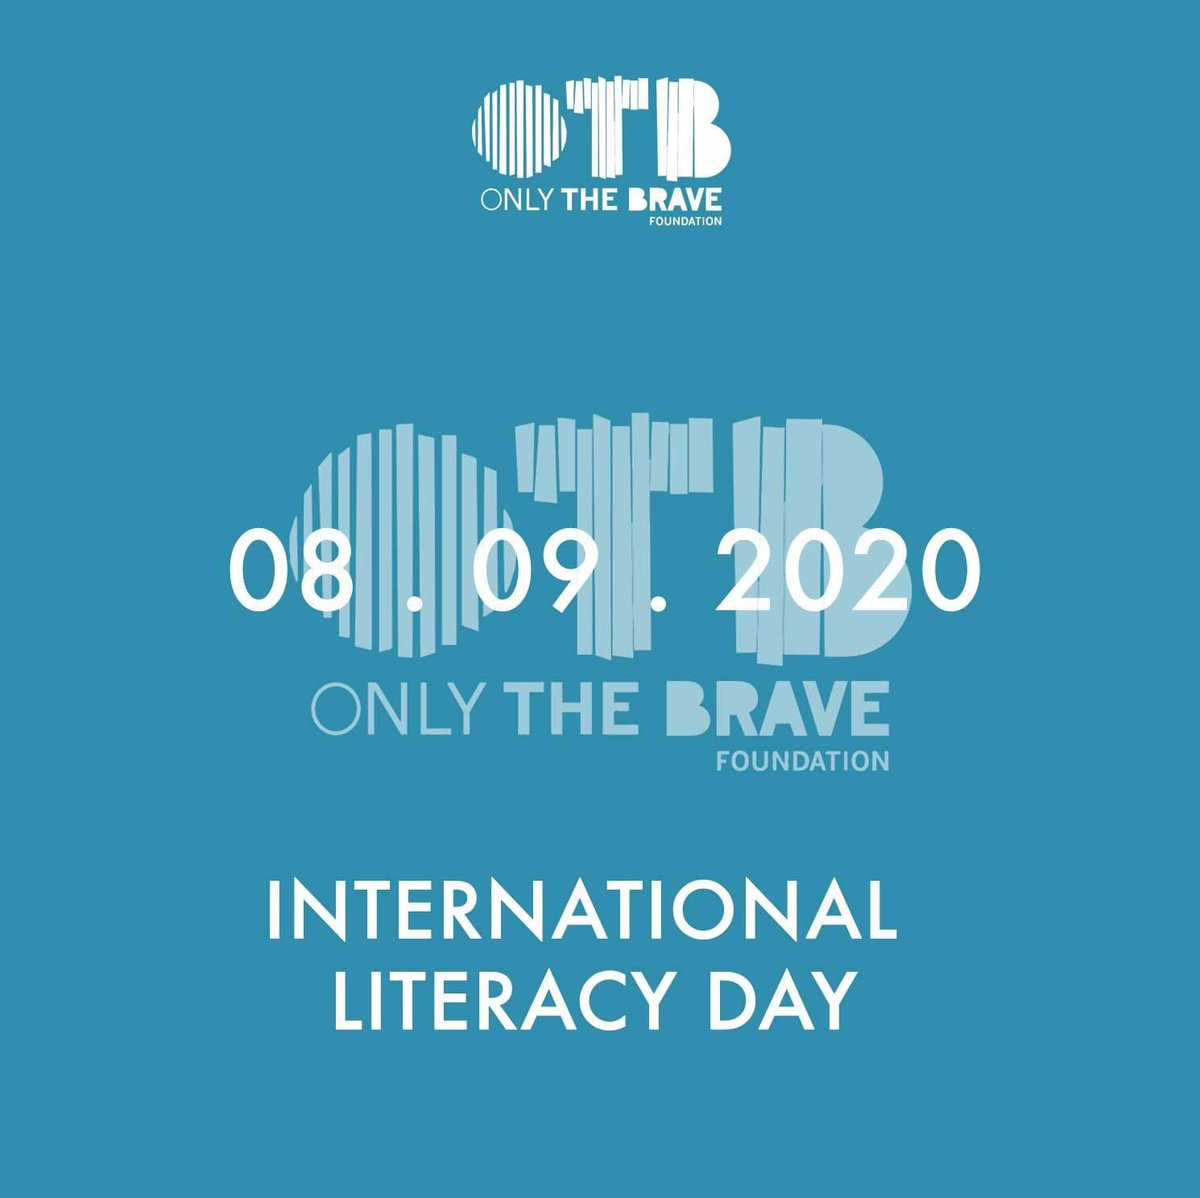 Another important international day, today the @UN all over the world they celebrate #internationaliteracyday . This day was established in an attempt to remember the value of education which must be of quality for everyone. #OtbFoundation #BraveActionsForABetterWorld https://t.co/GWkGADrKqq